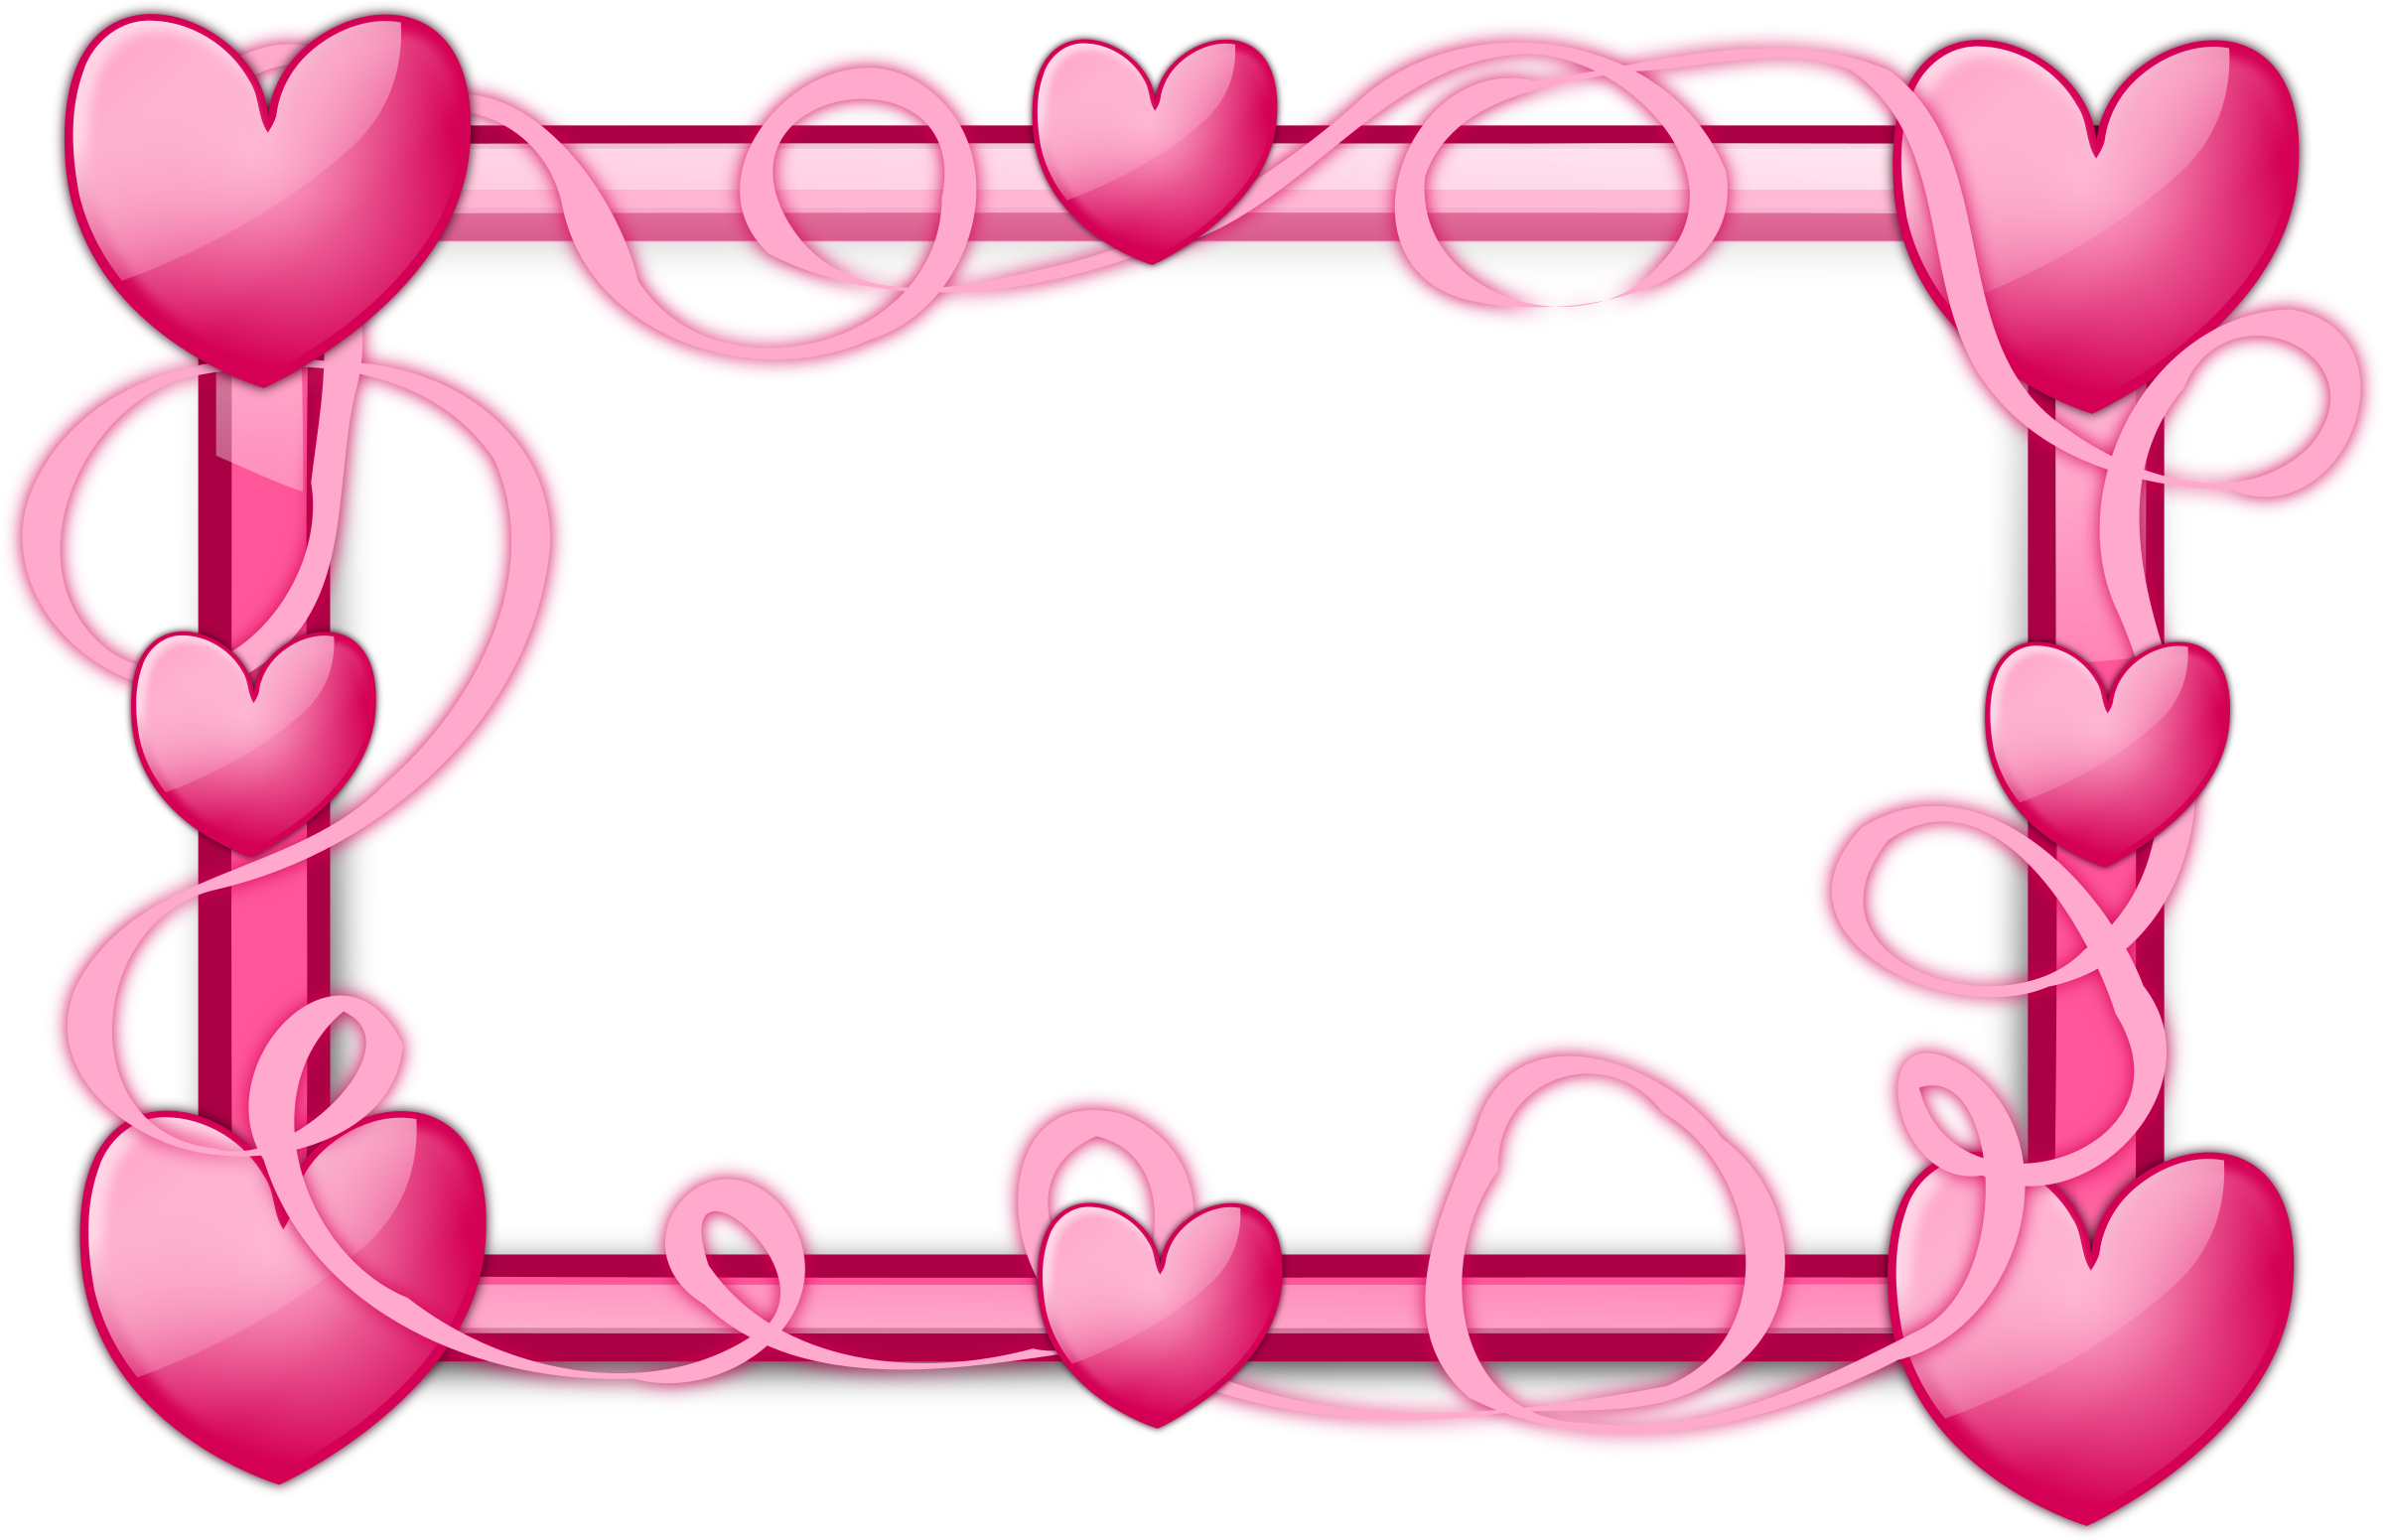 Pink Hearts Frame by @inky2010, Glossy Transparent Frames, on ...